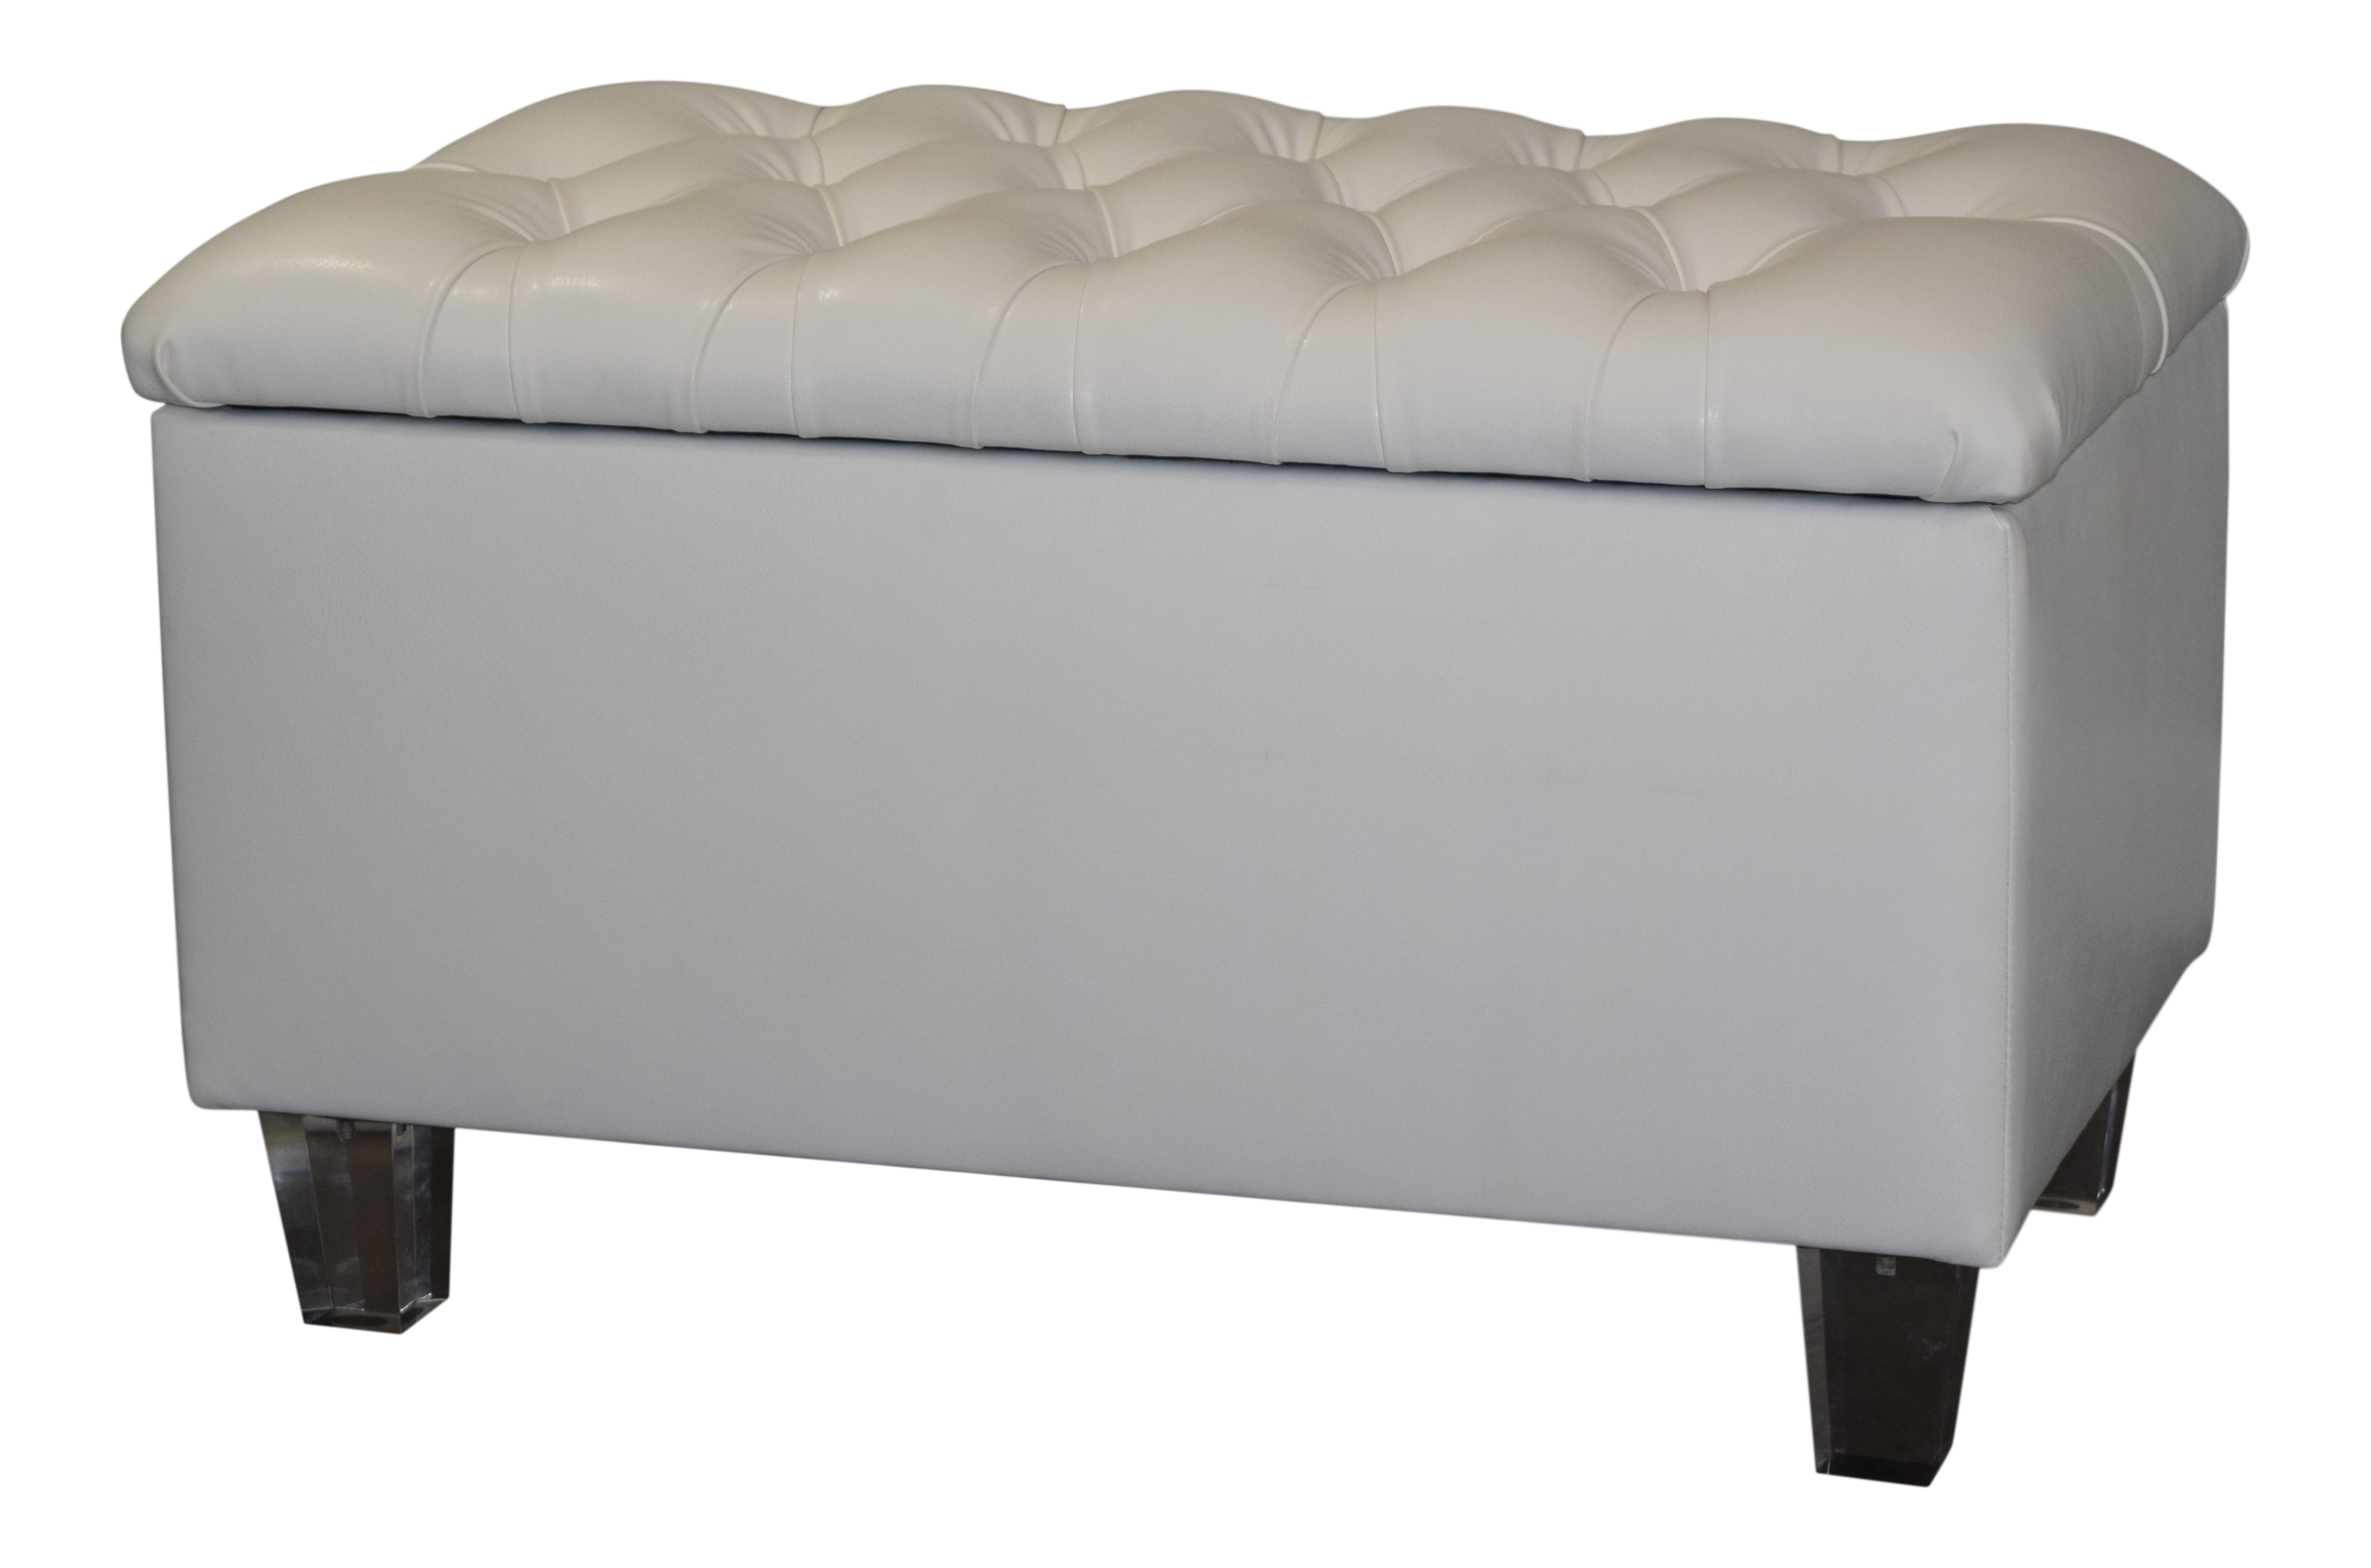 Phenomenal Diamond Tufted Storage Bench Ottoman In Off White Faux Leather With Clear Acrylic Legs Evergreenethics Interior Chair Design Evergreenethicsorg